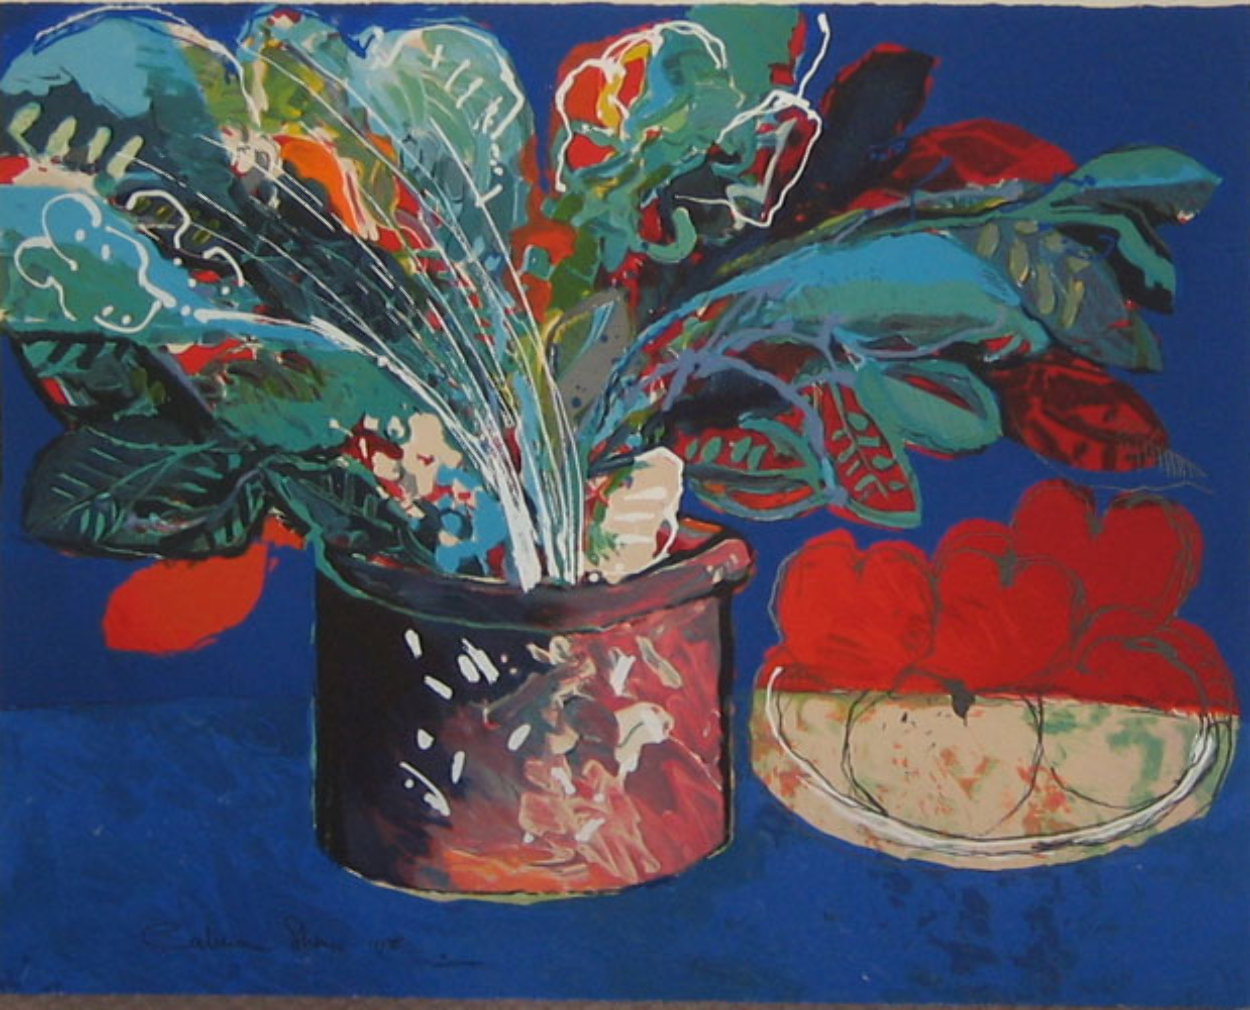 Still Life in Blue Limited Edition Print by Calman Shemi